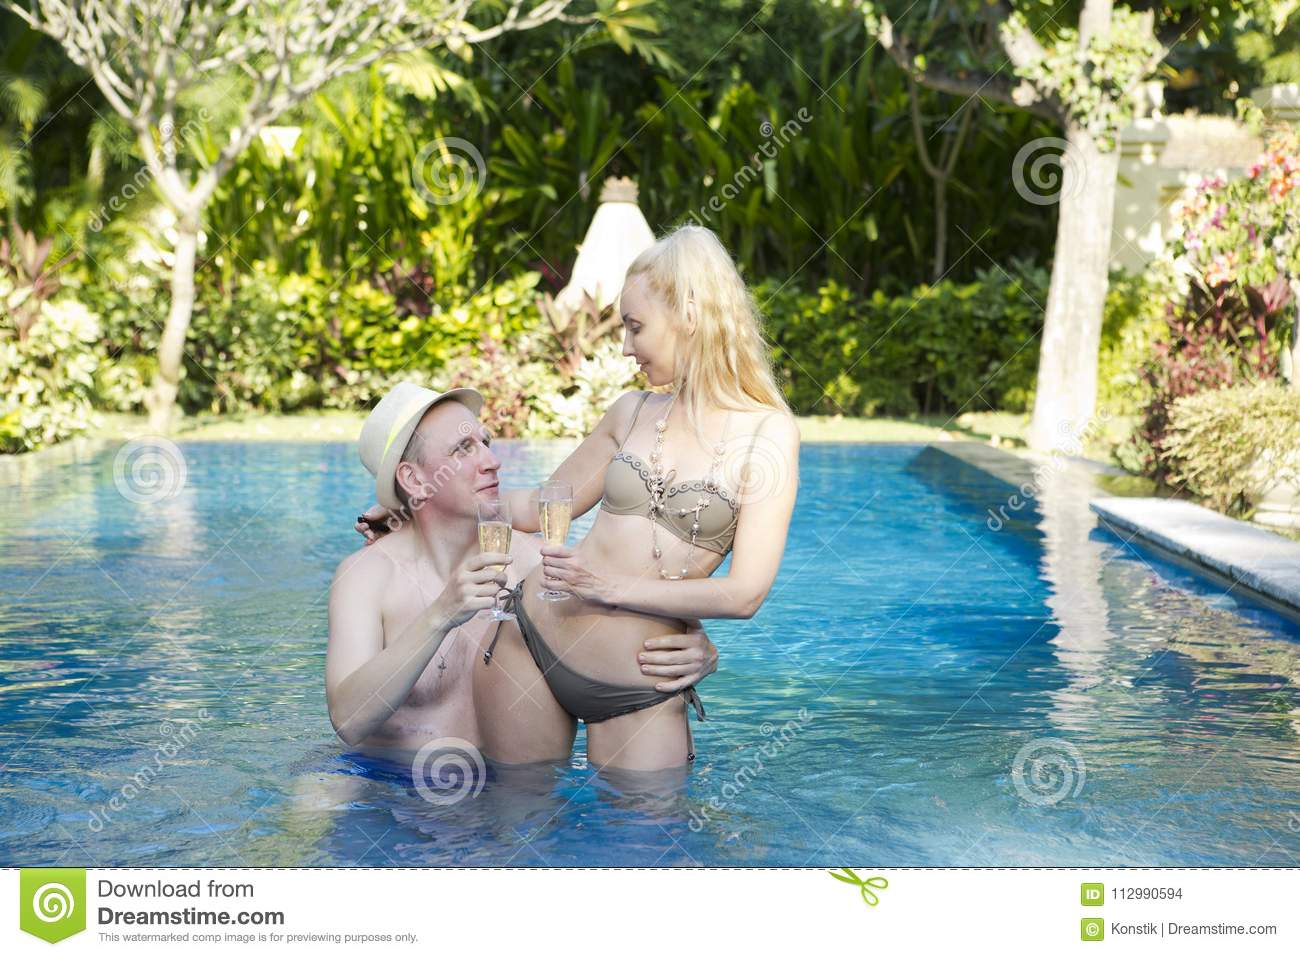 Man and woman, loving couple, in pool in a garden with tropical trees hold glasses with wine in hand